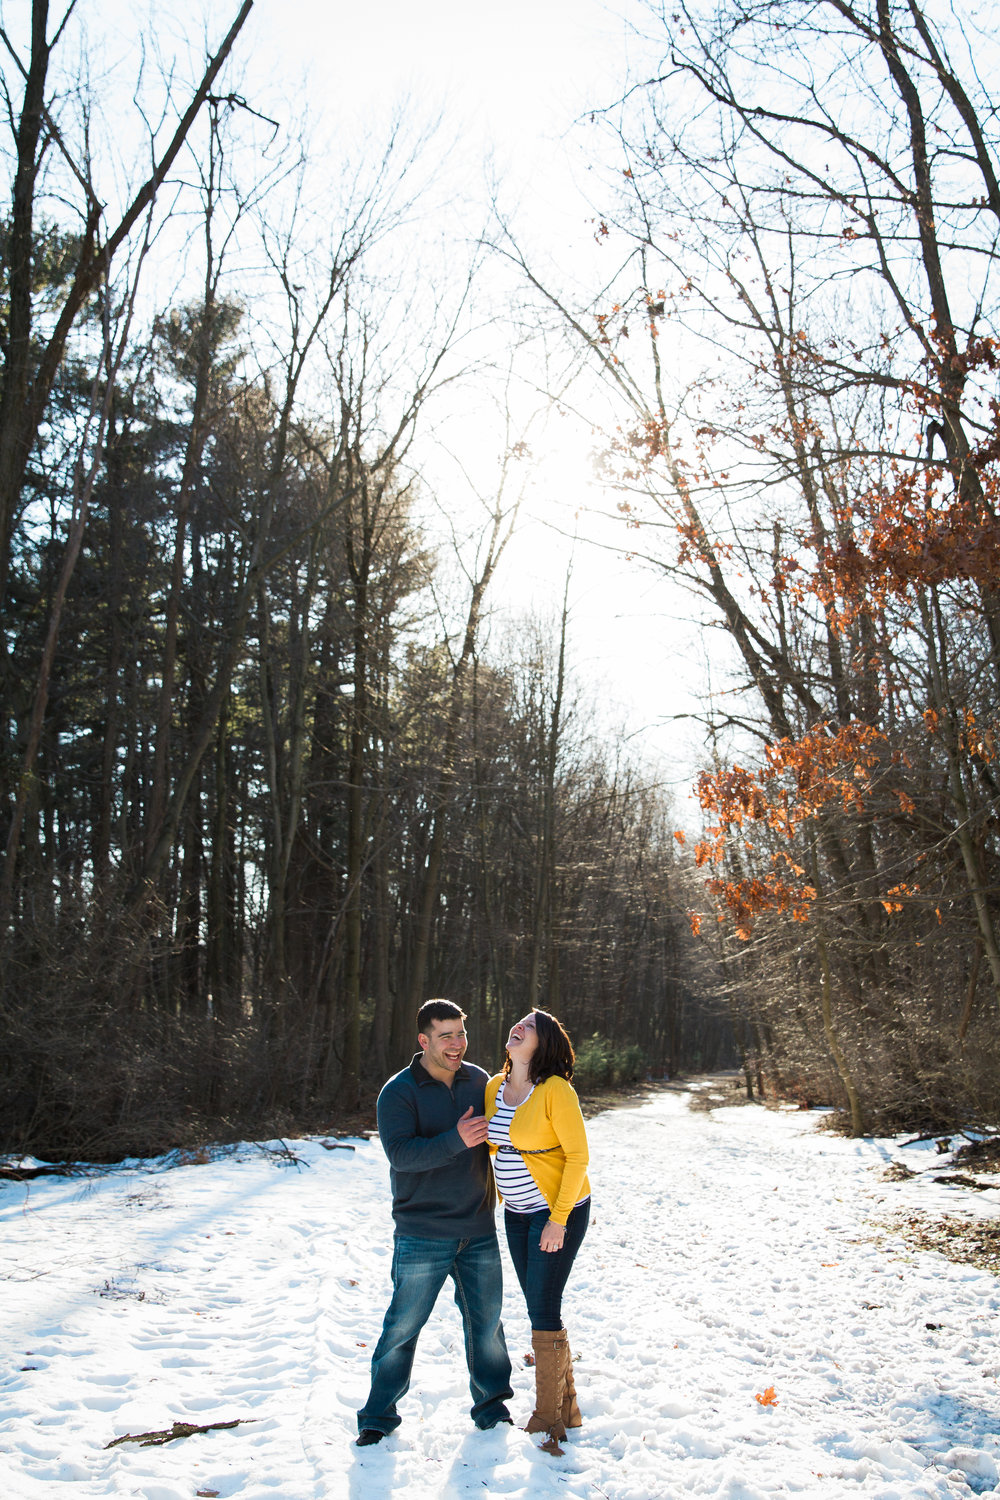 Winter Wonderland Maternity Photos - Mily Photography